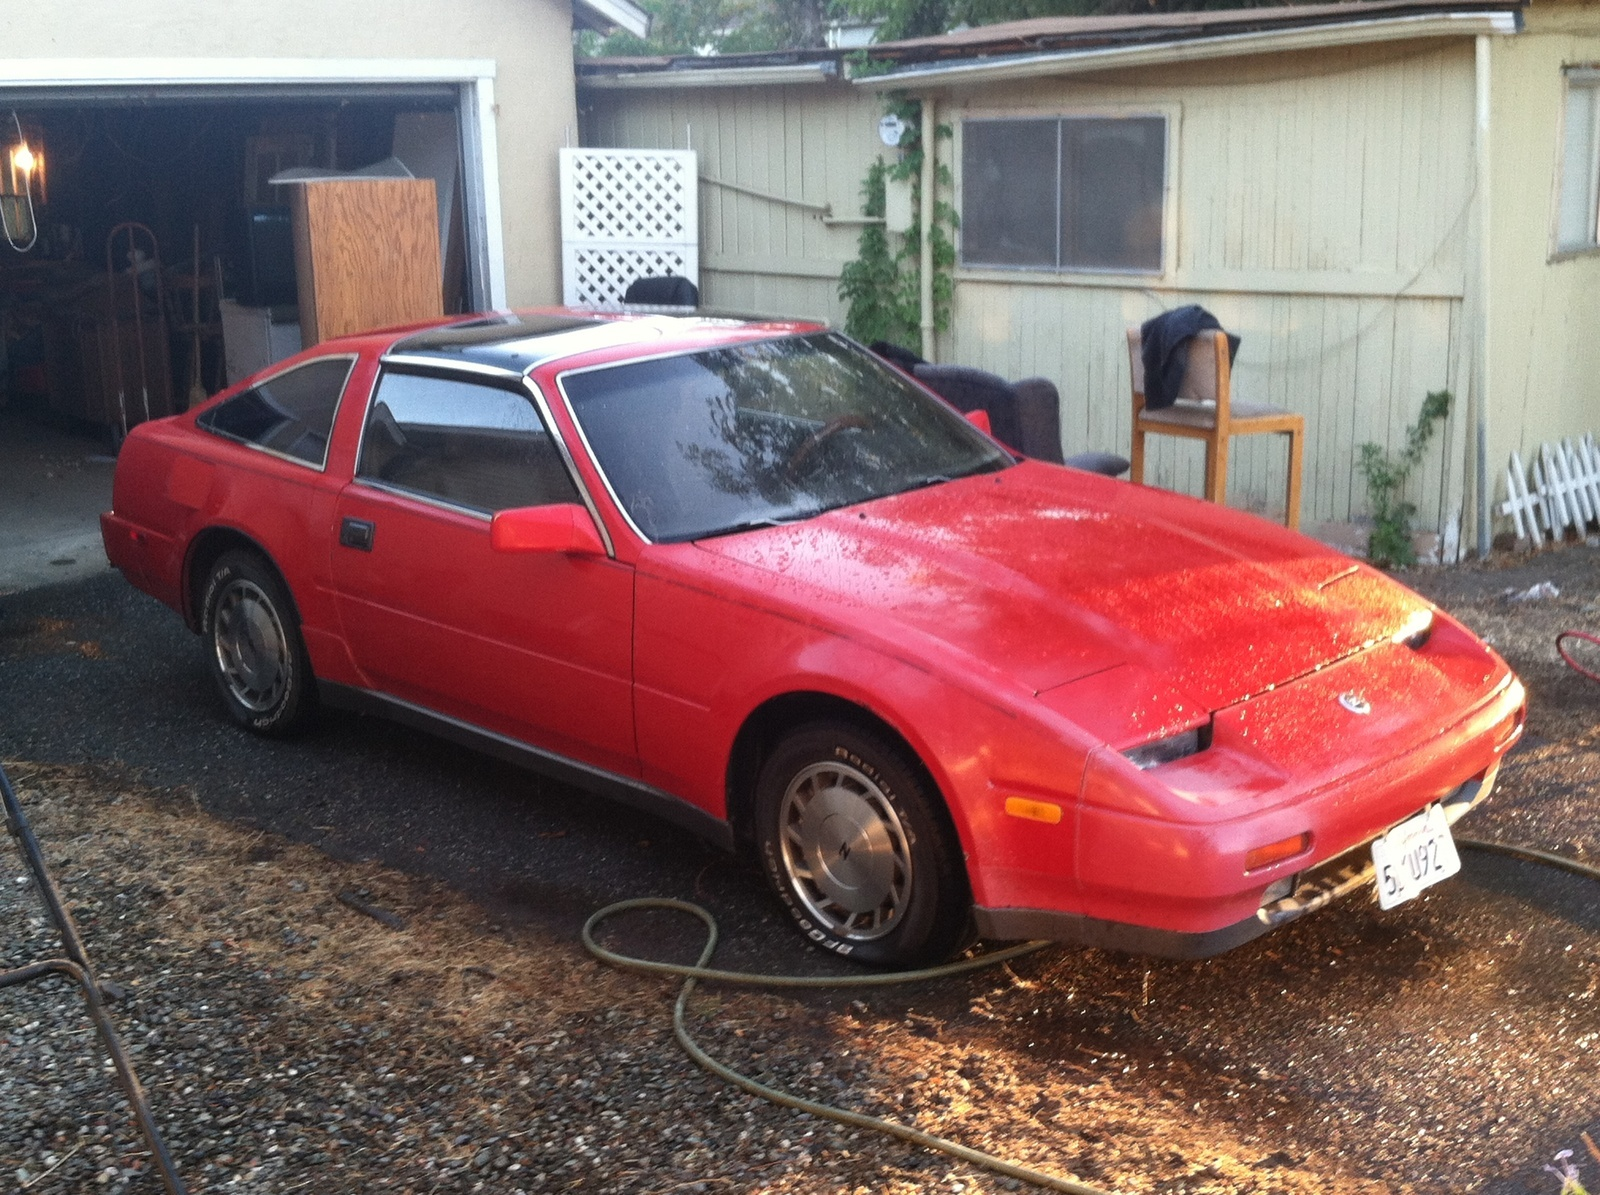 nissan 300zx questions - opinions on the speed of this car? - cargurus